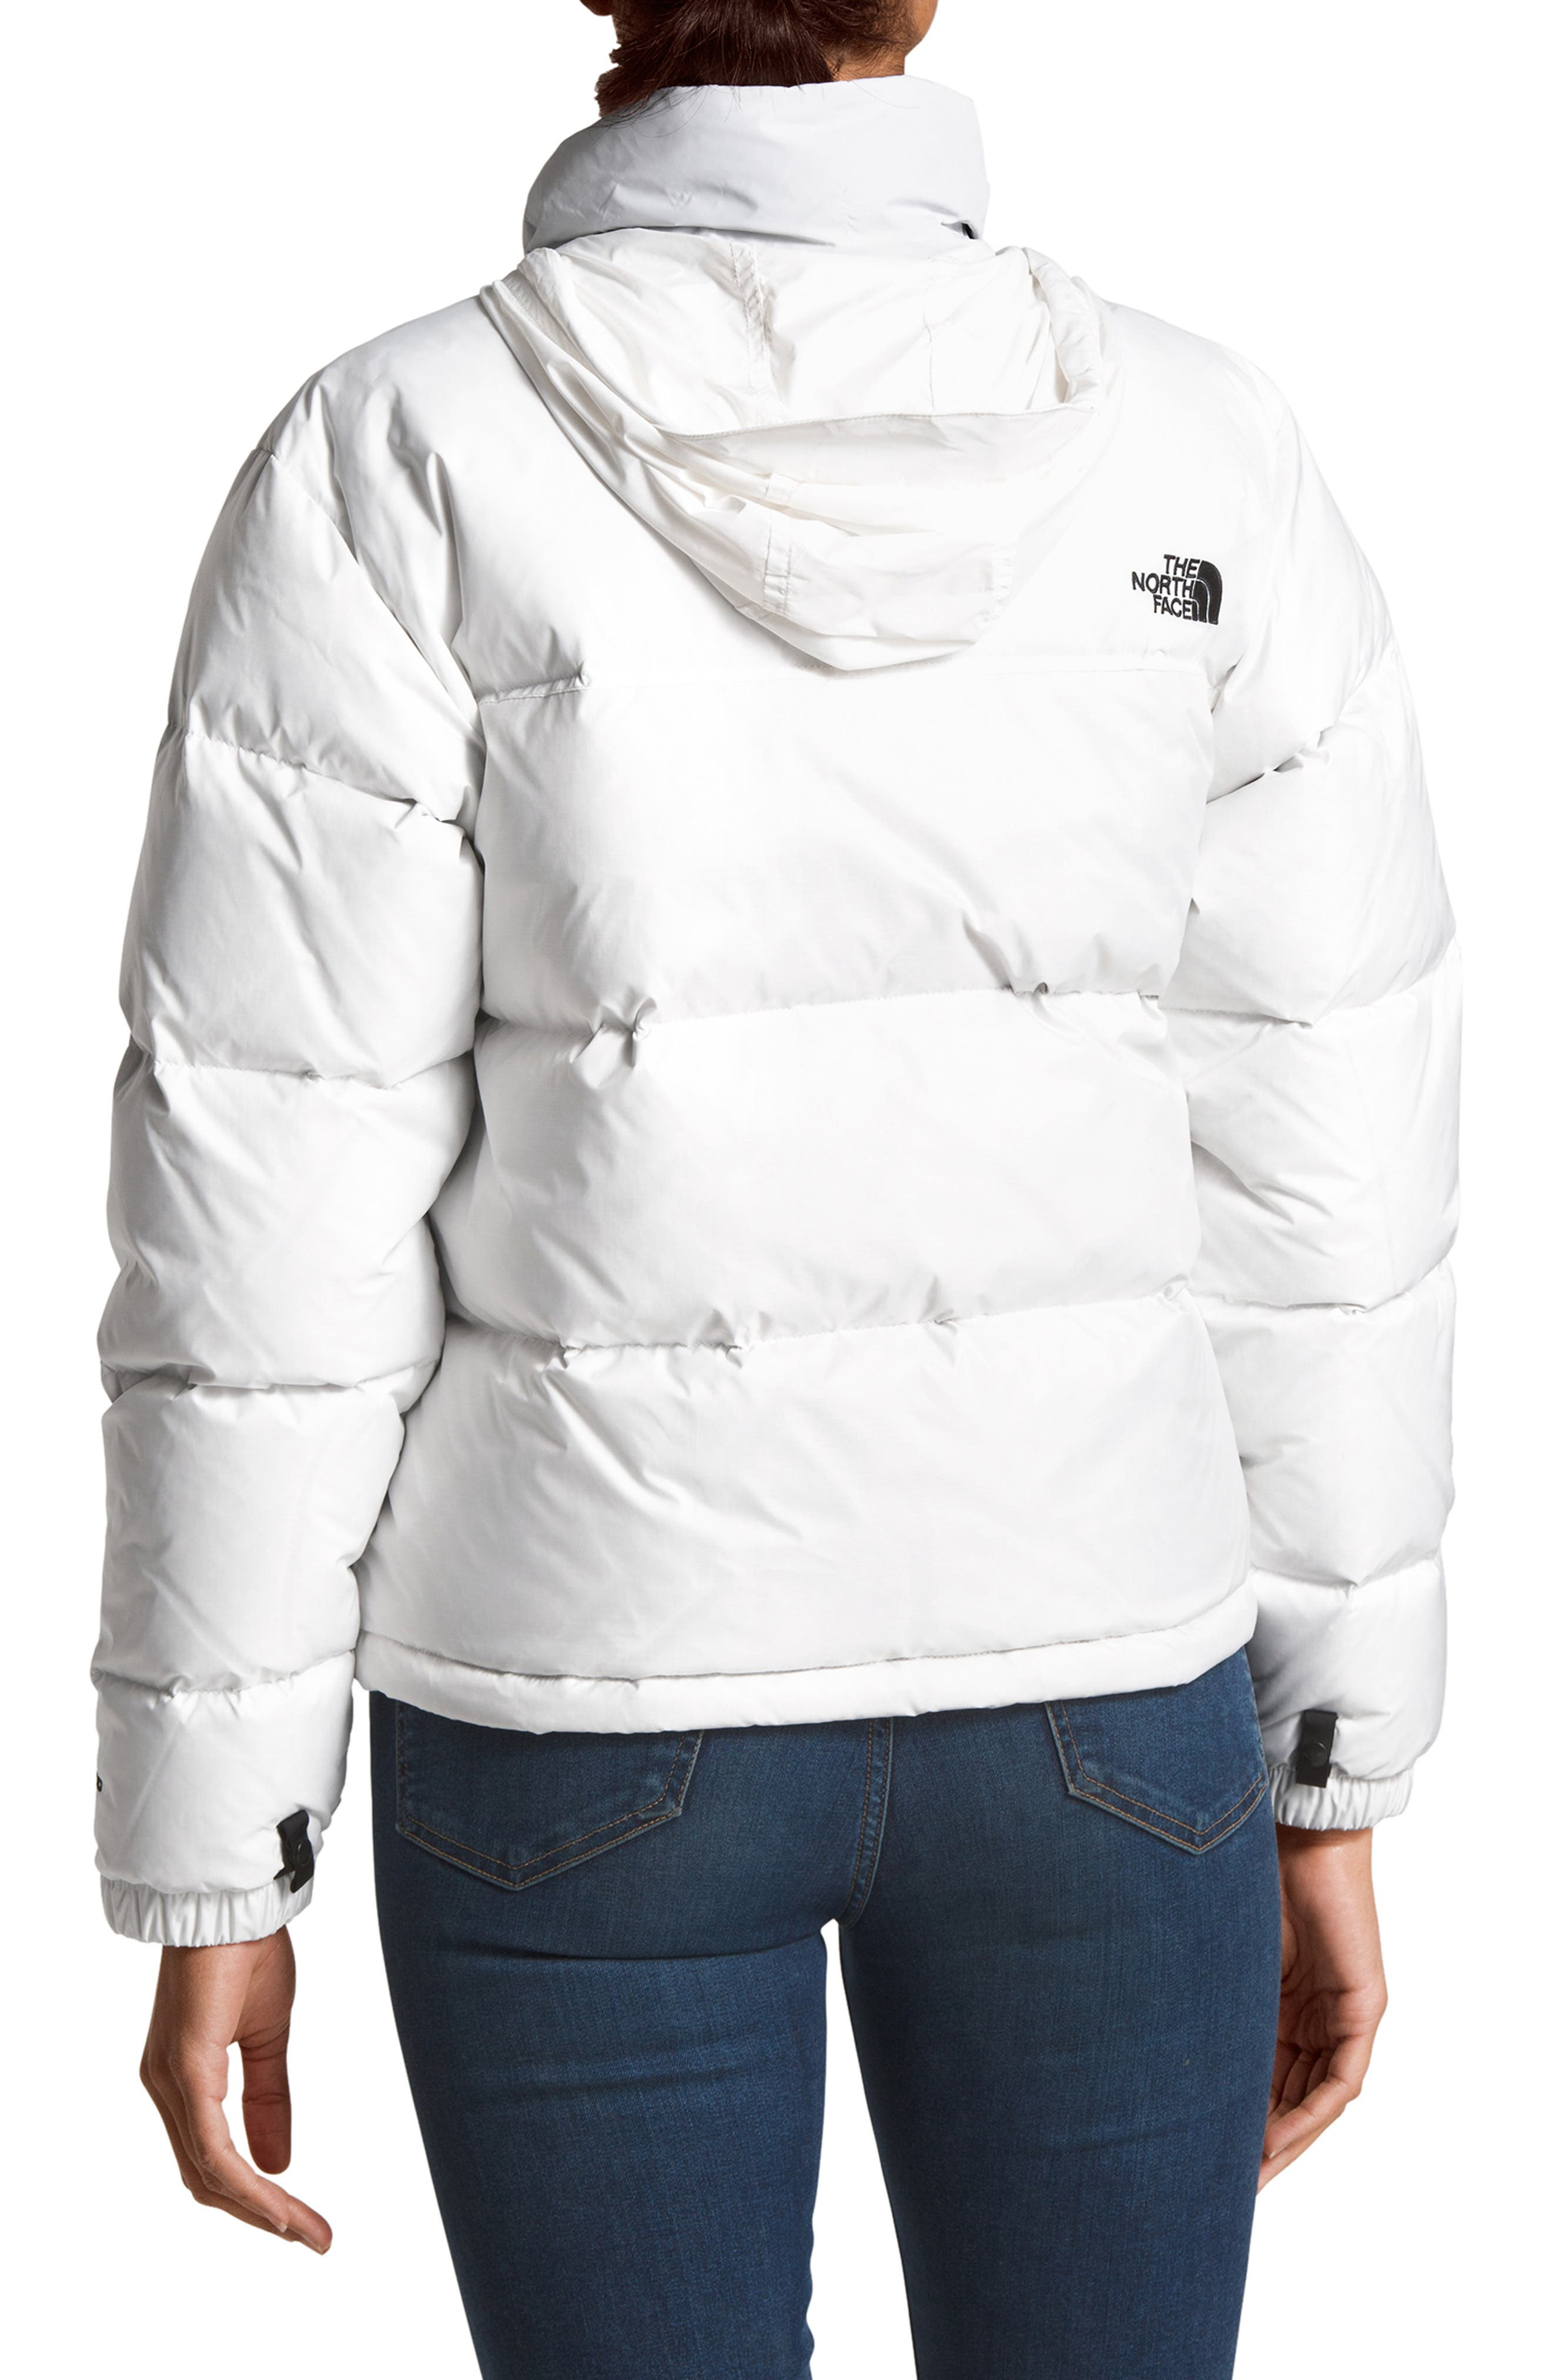 THE NORTH FACE, Nuptse 1996 Packable Quilted Down Jacket, Alternate thumbnail 2, color, TNF WHITE